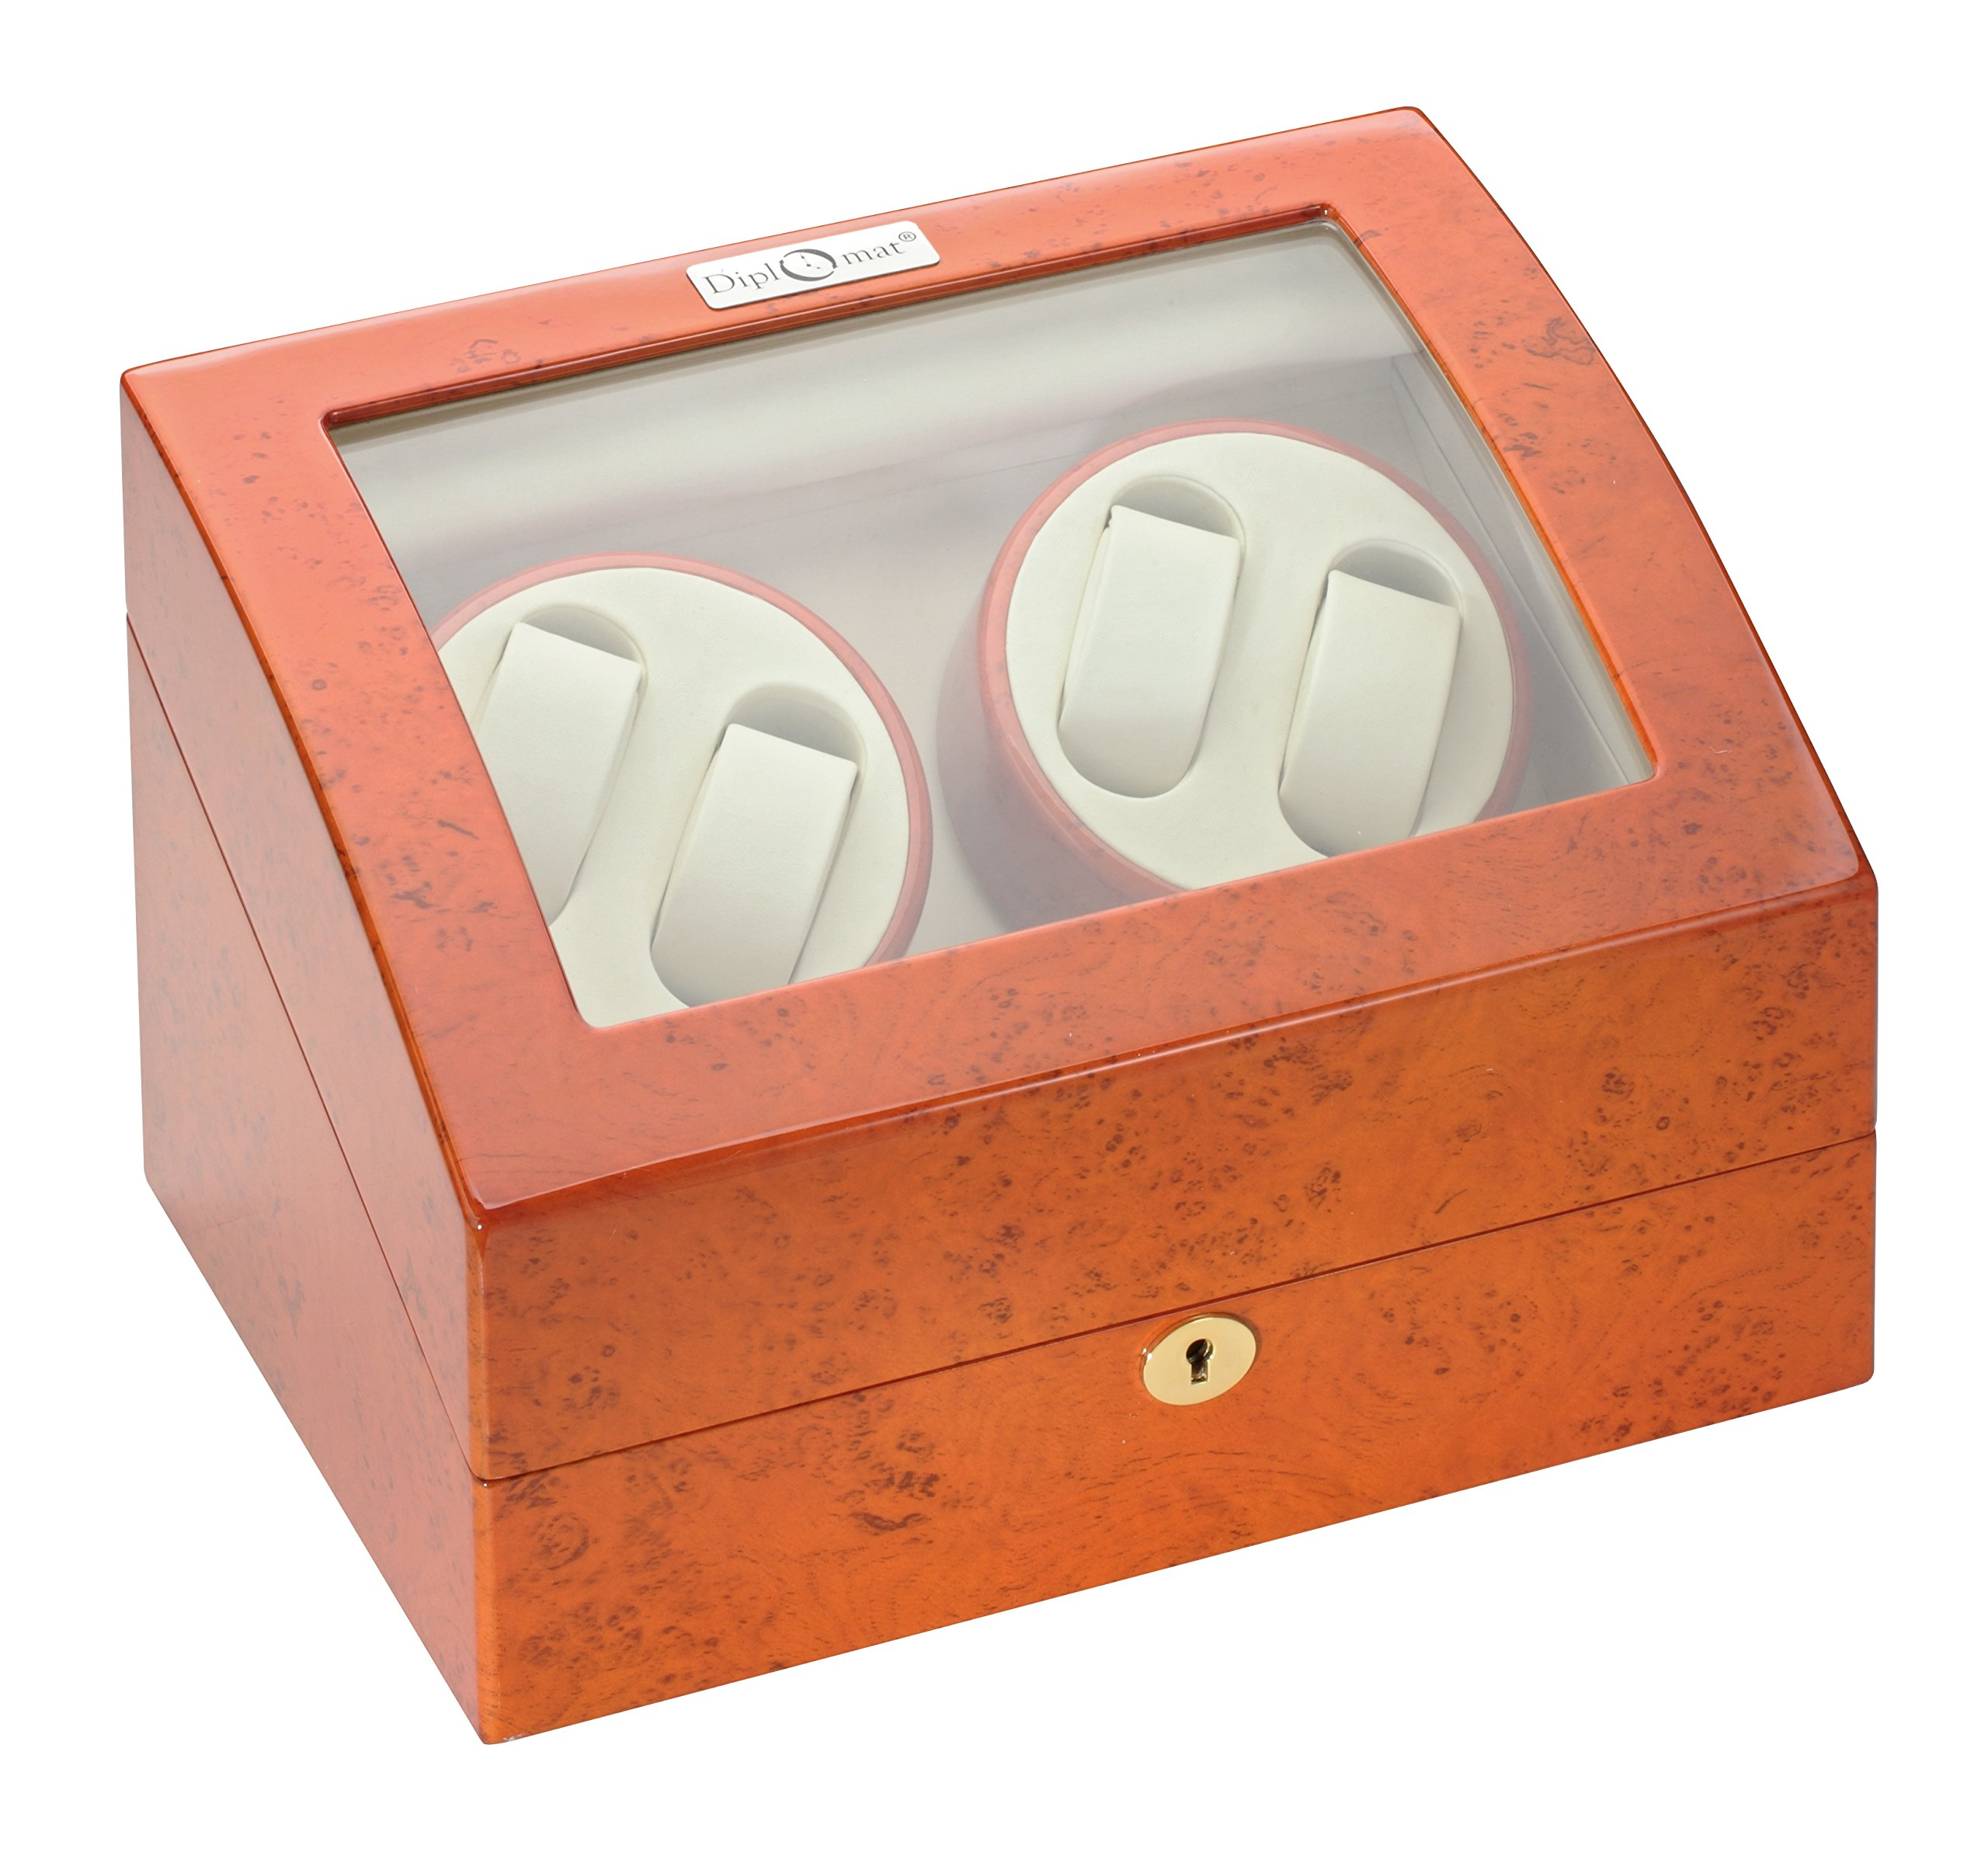 Diplomat 31-415 Burl Wood Quad Watch Winder with Off-White Leather Interior